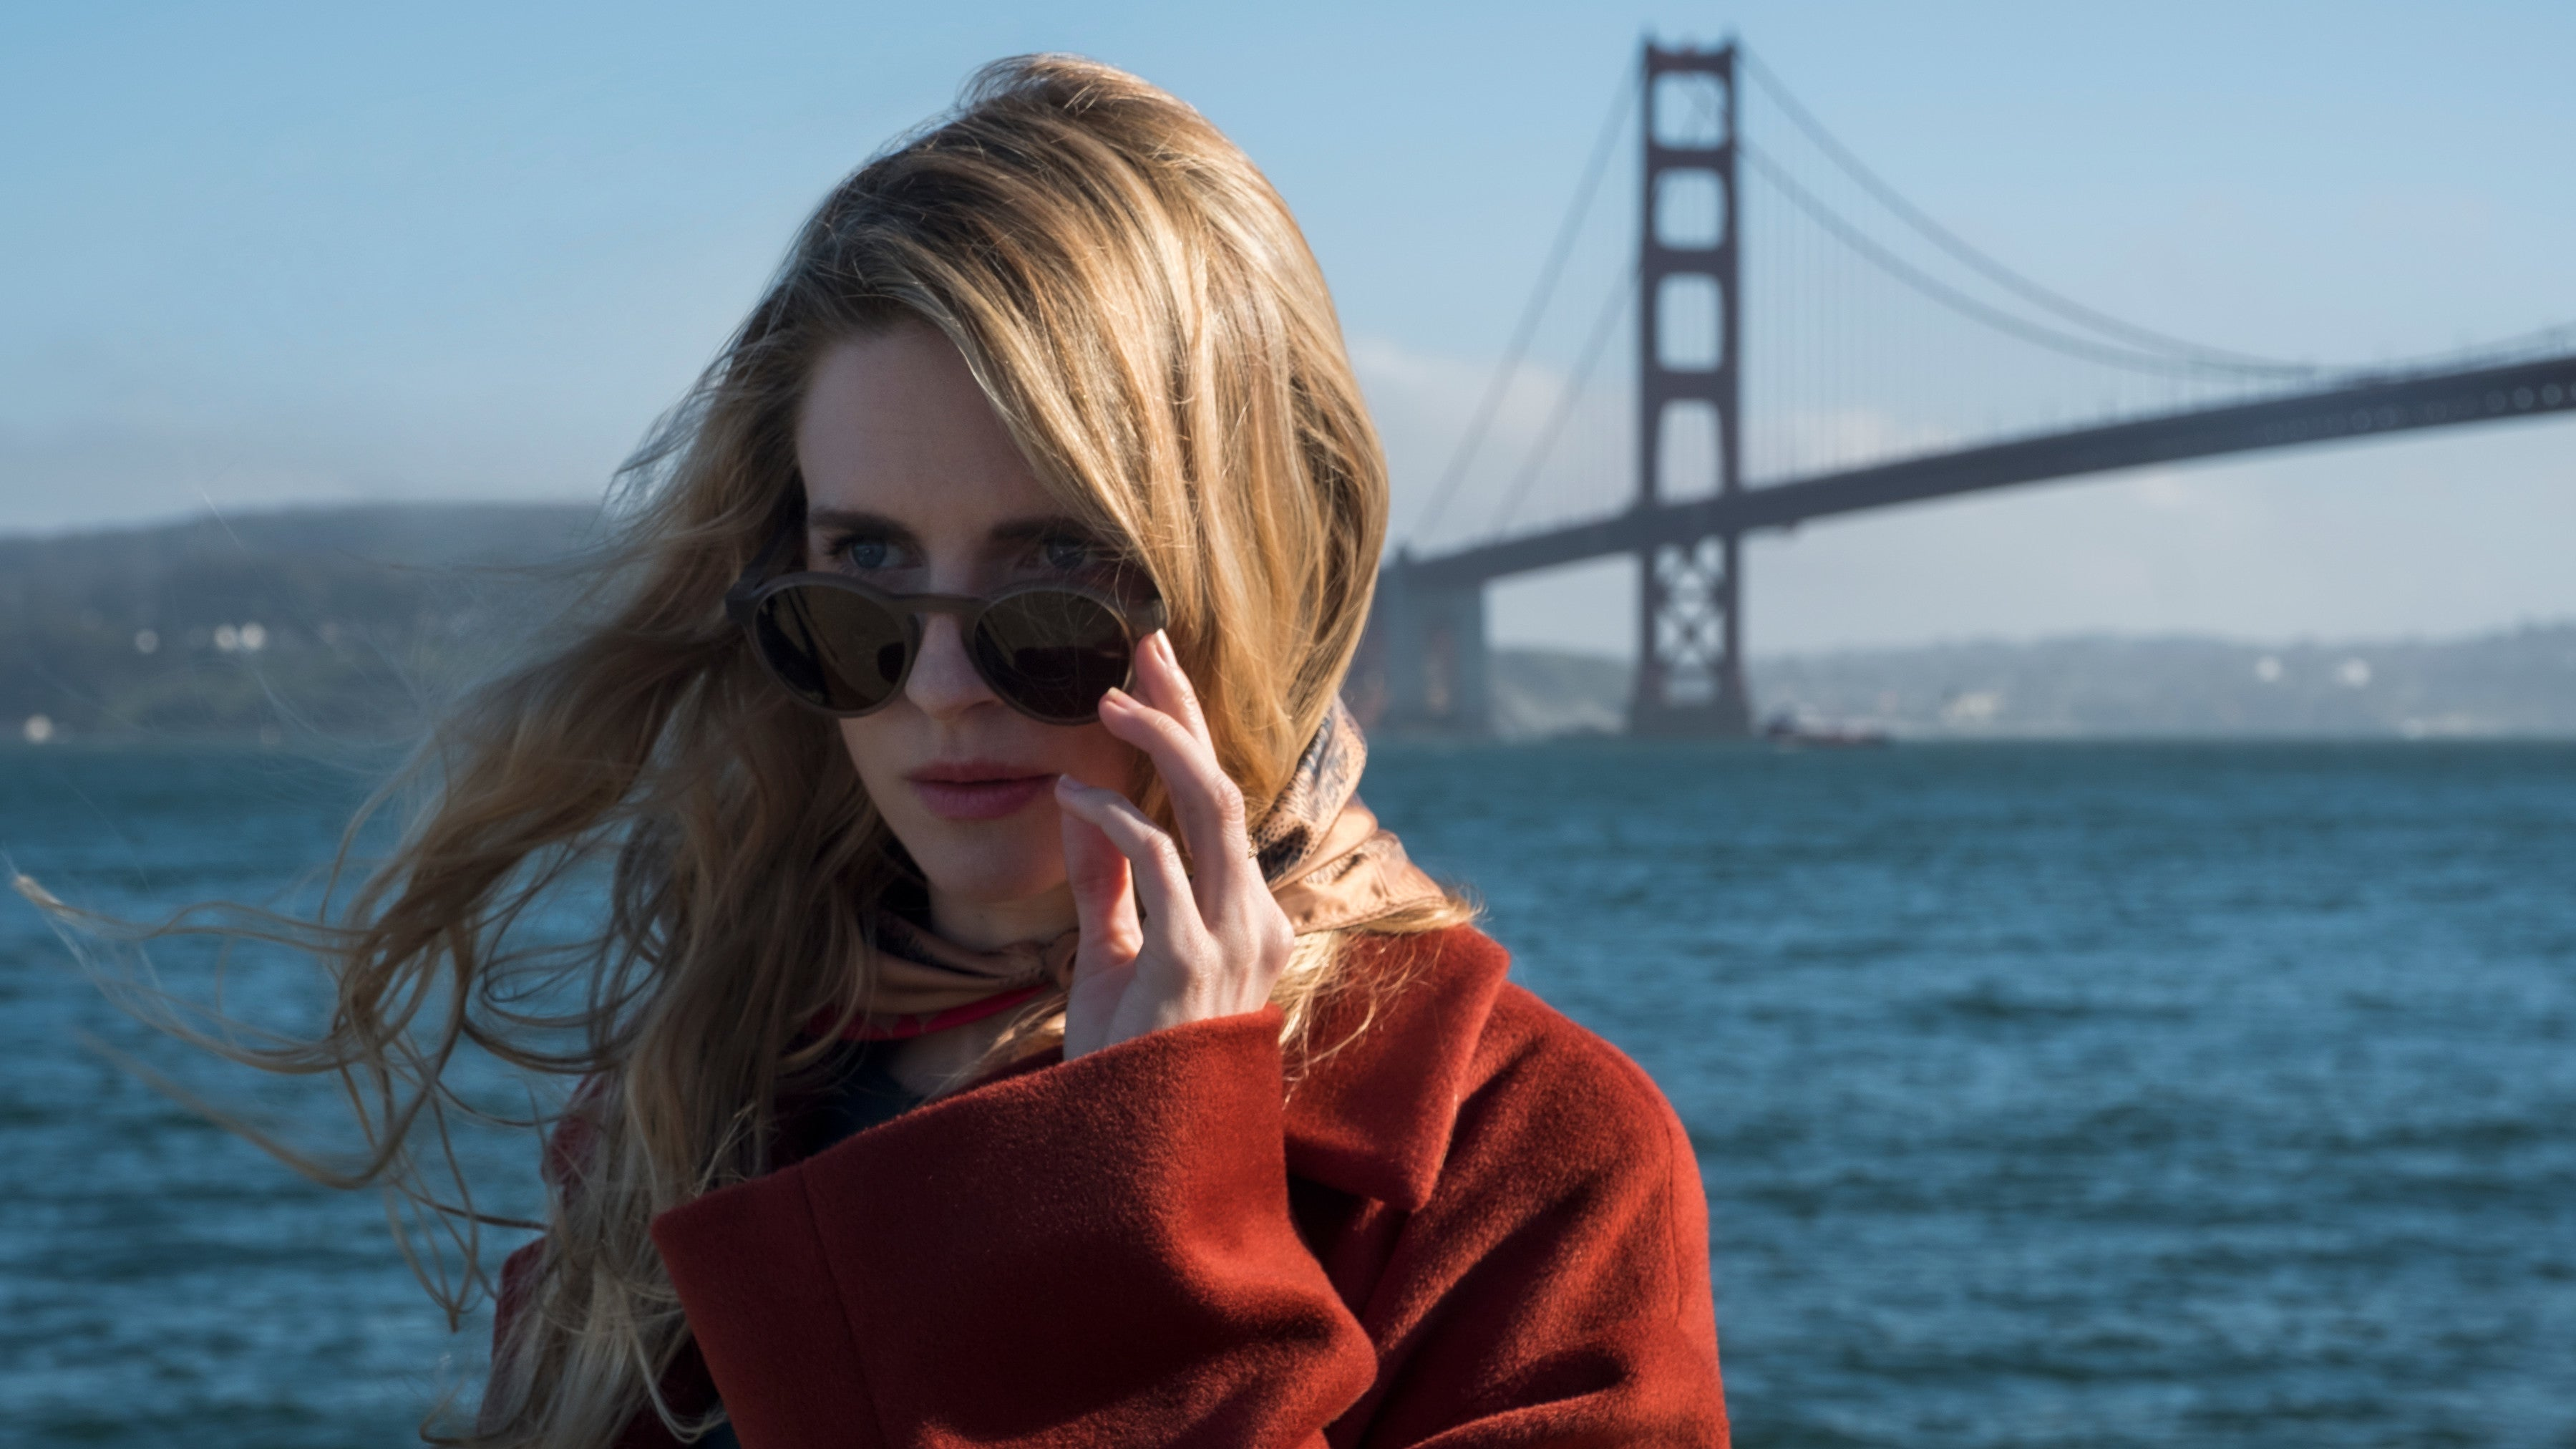 The OA Co-Creator Brit Marling Wants More Than 'Strong Female Leads'